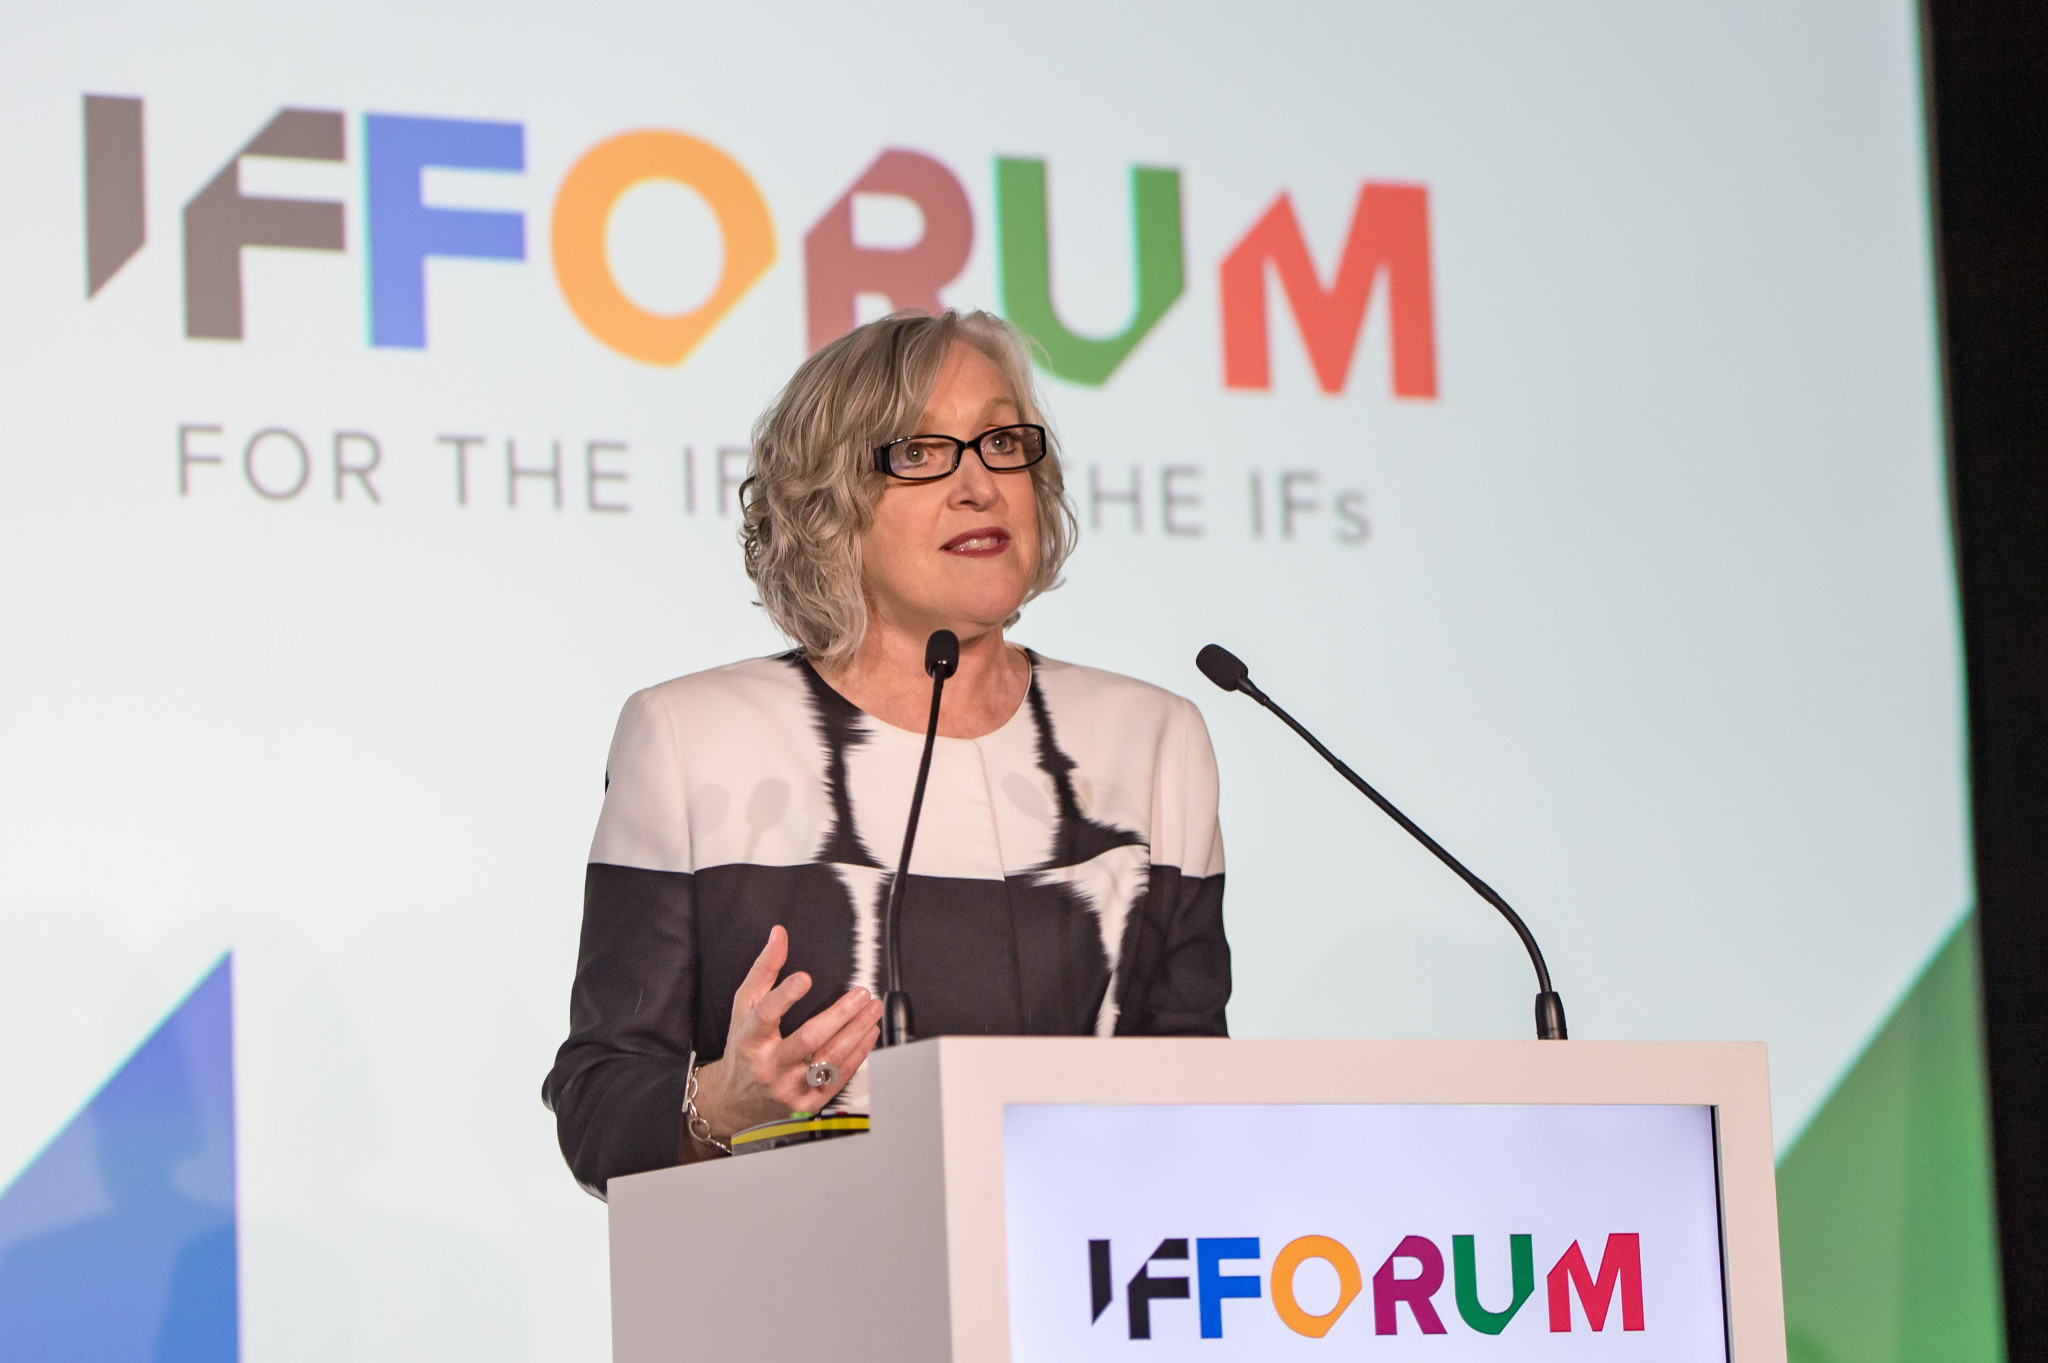 Leanne Coddington, chief executive of Tourism and Events Queensland, briefed the International Federations on year's SportAccord Convention due to be held in the Gold Coast next May ©SportAccord